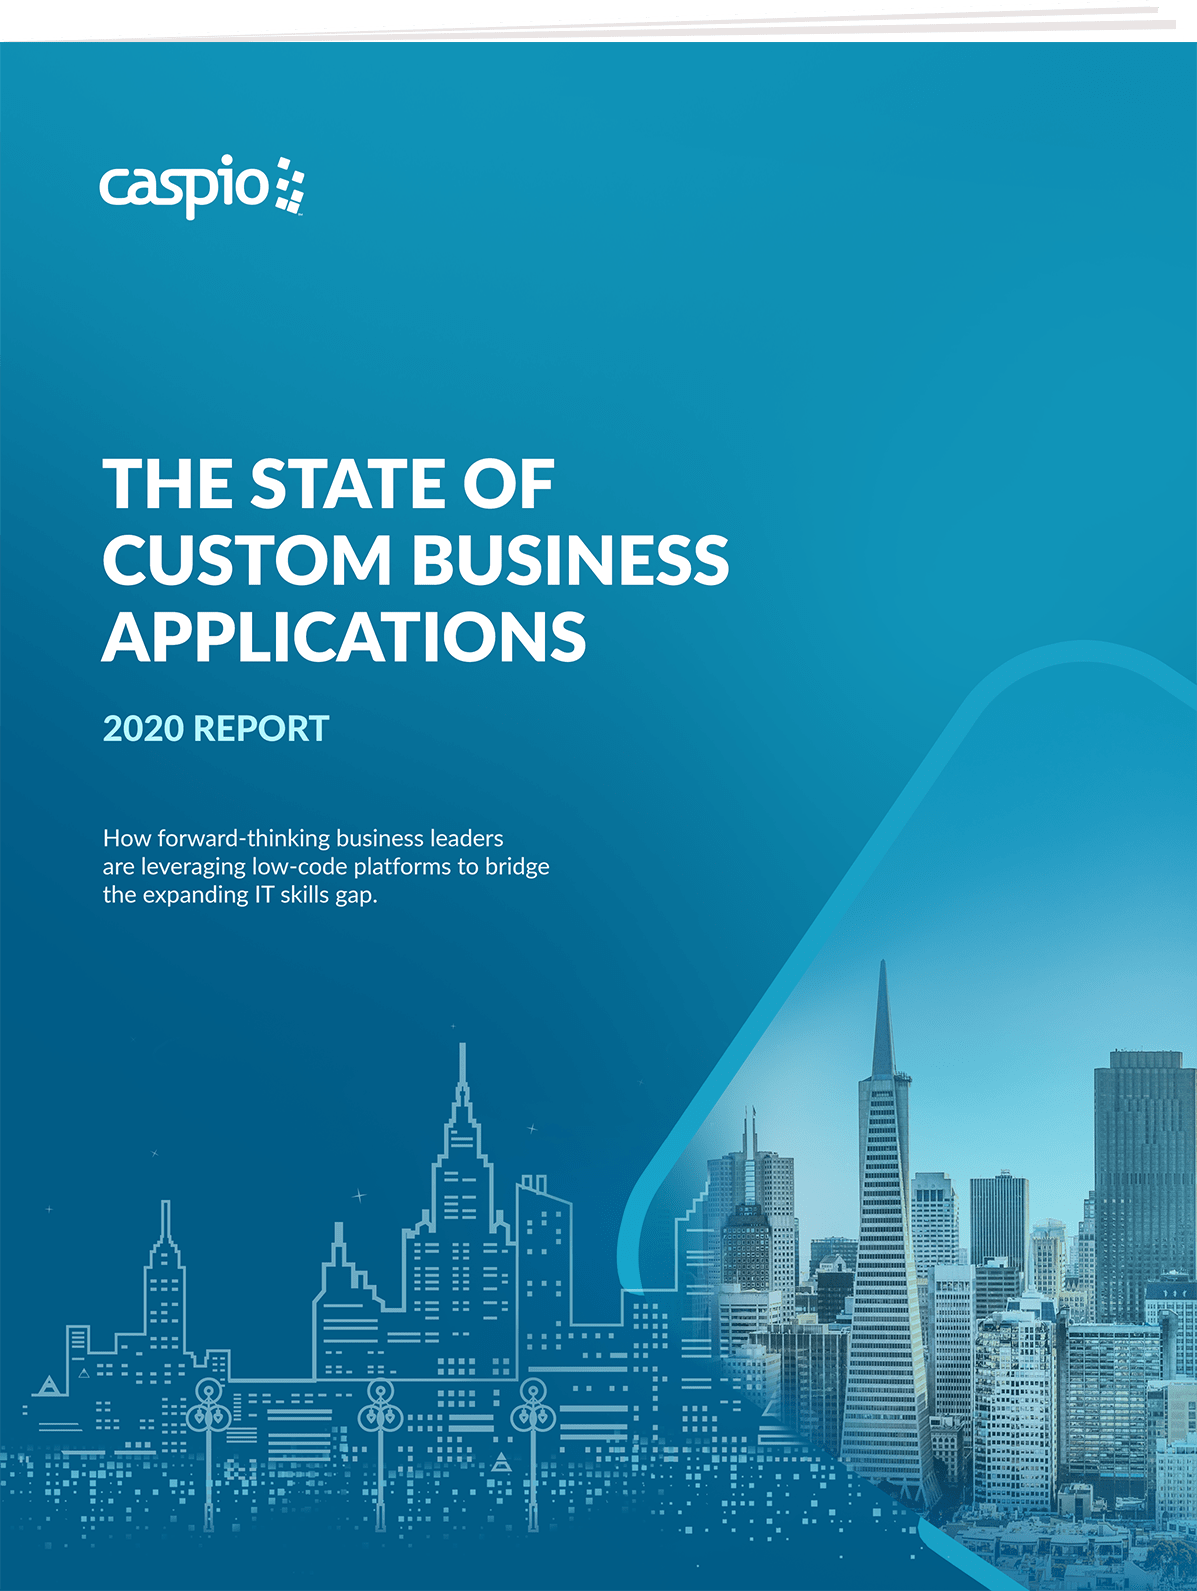 The State of Custom Business Applications 2020 Report by Caspio